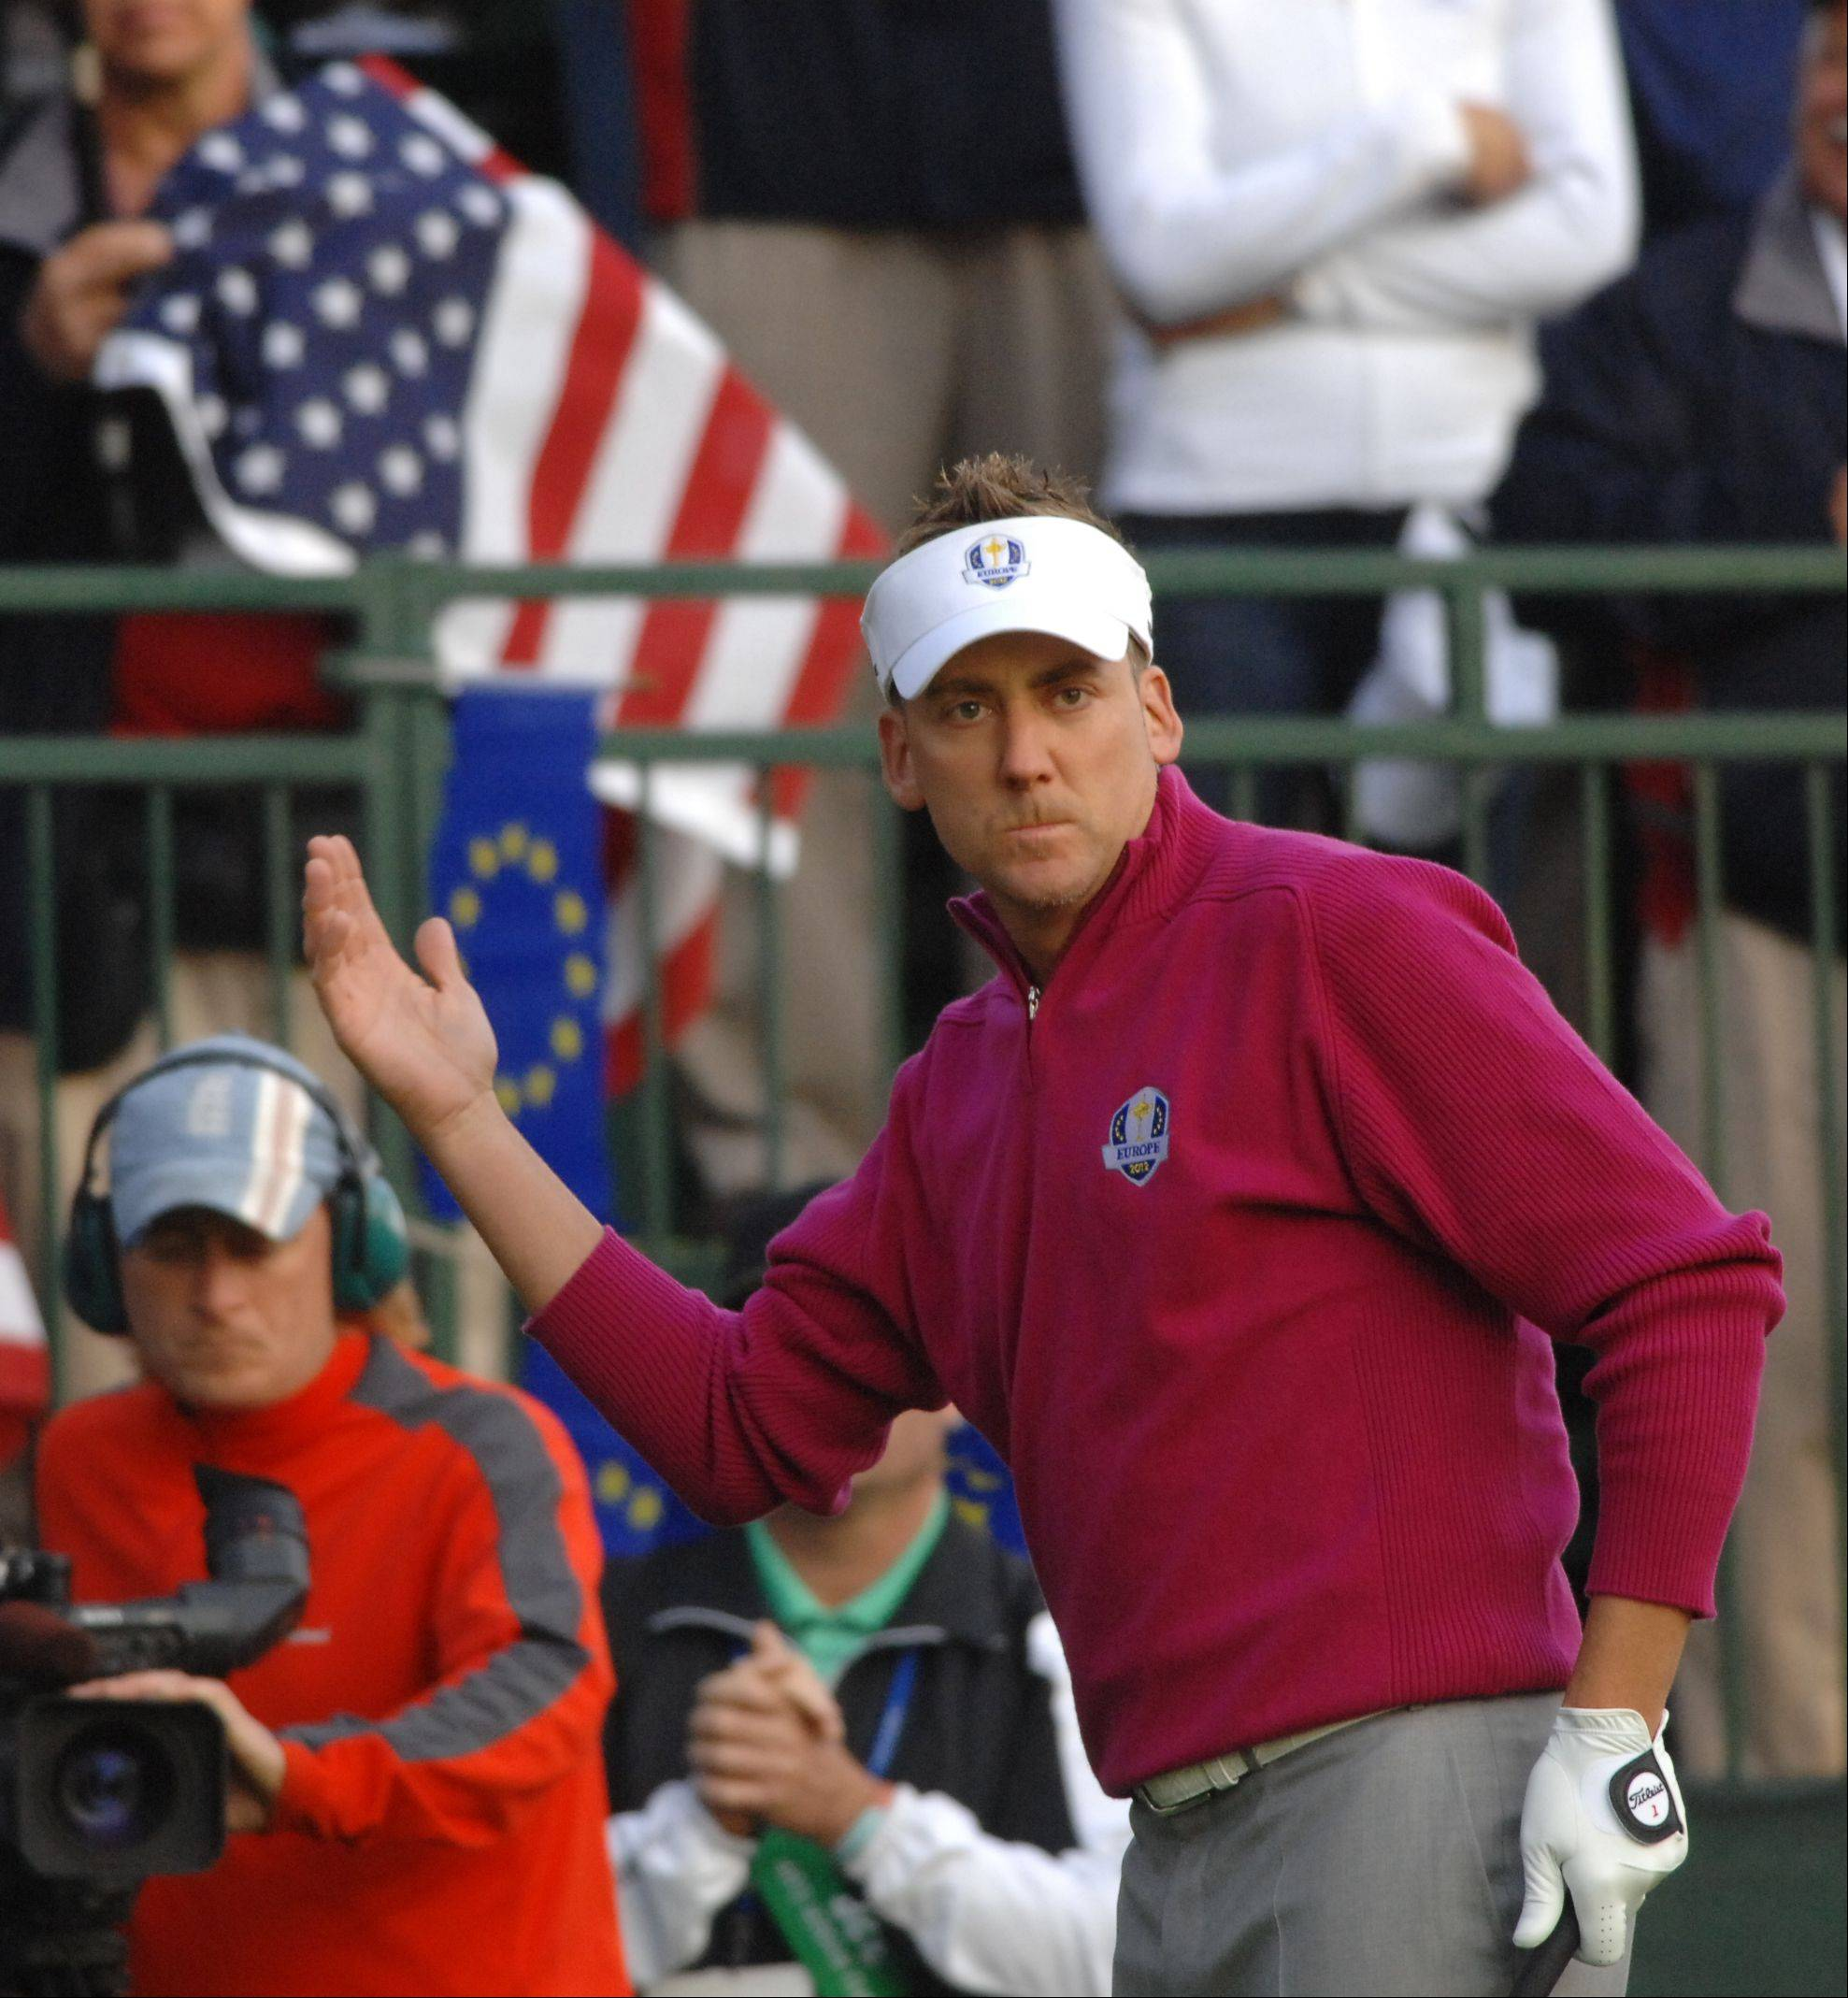 Ian Poulter of Team Europe tries to get the crowd before taking his tee shot Saturday morning during Day 2 of the 2012 Ryder Cup at Medinah Country Club. Poulter later said his heart rate went from 100 to 110 after firing up the pro-USA crowd.